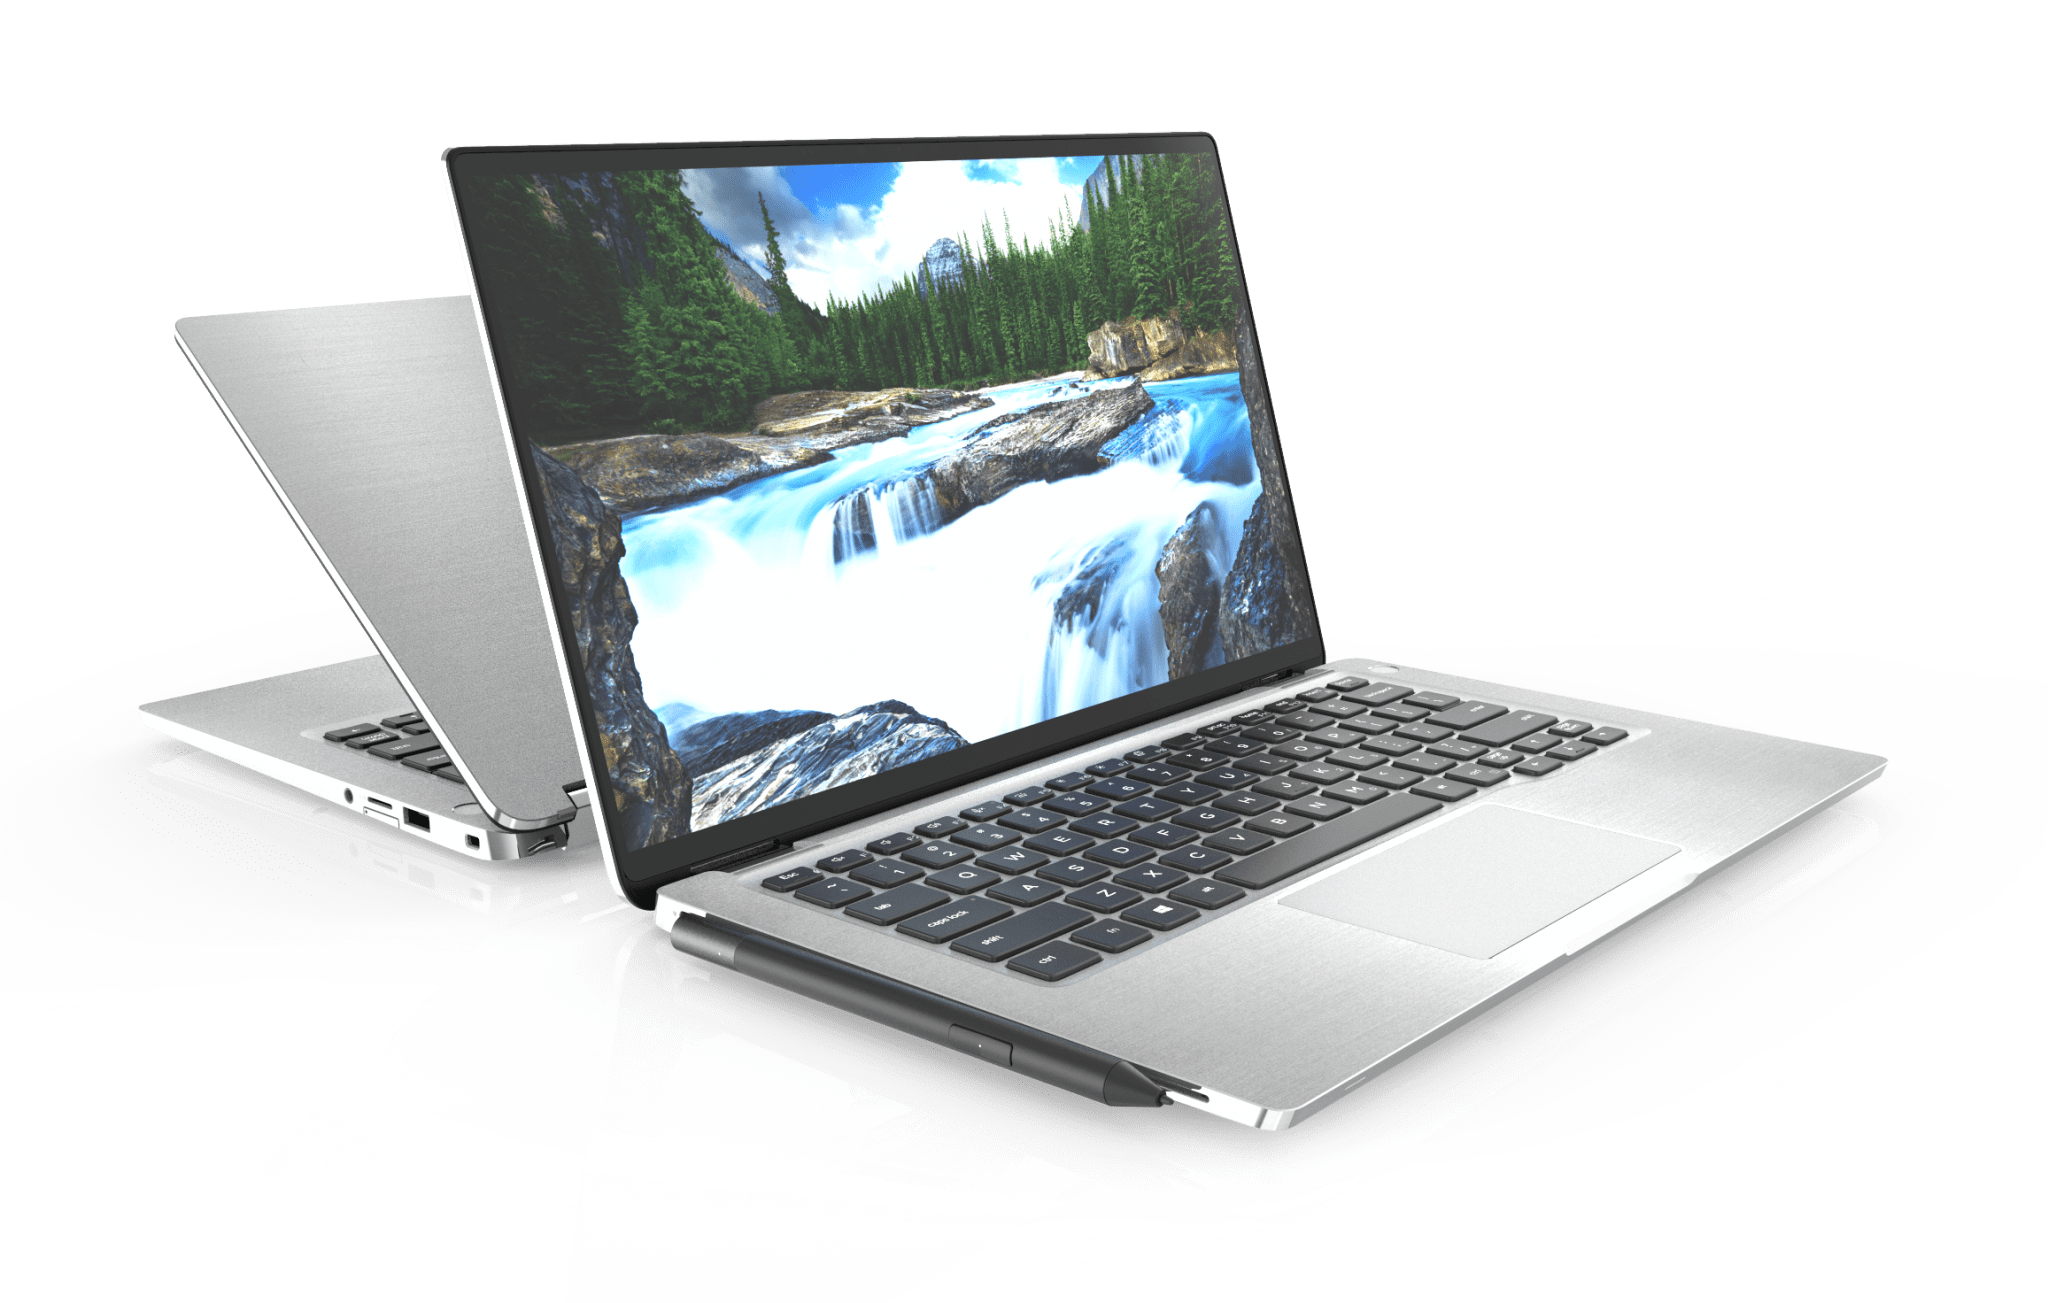 dell latitude 7400 2-in-1, Image, Gaurav Tiwari